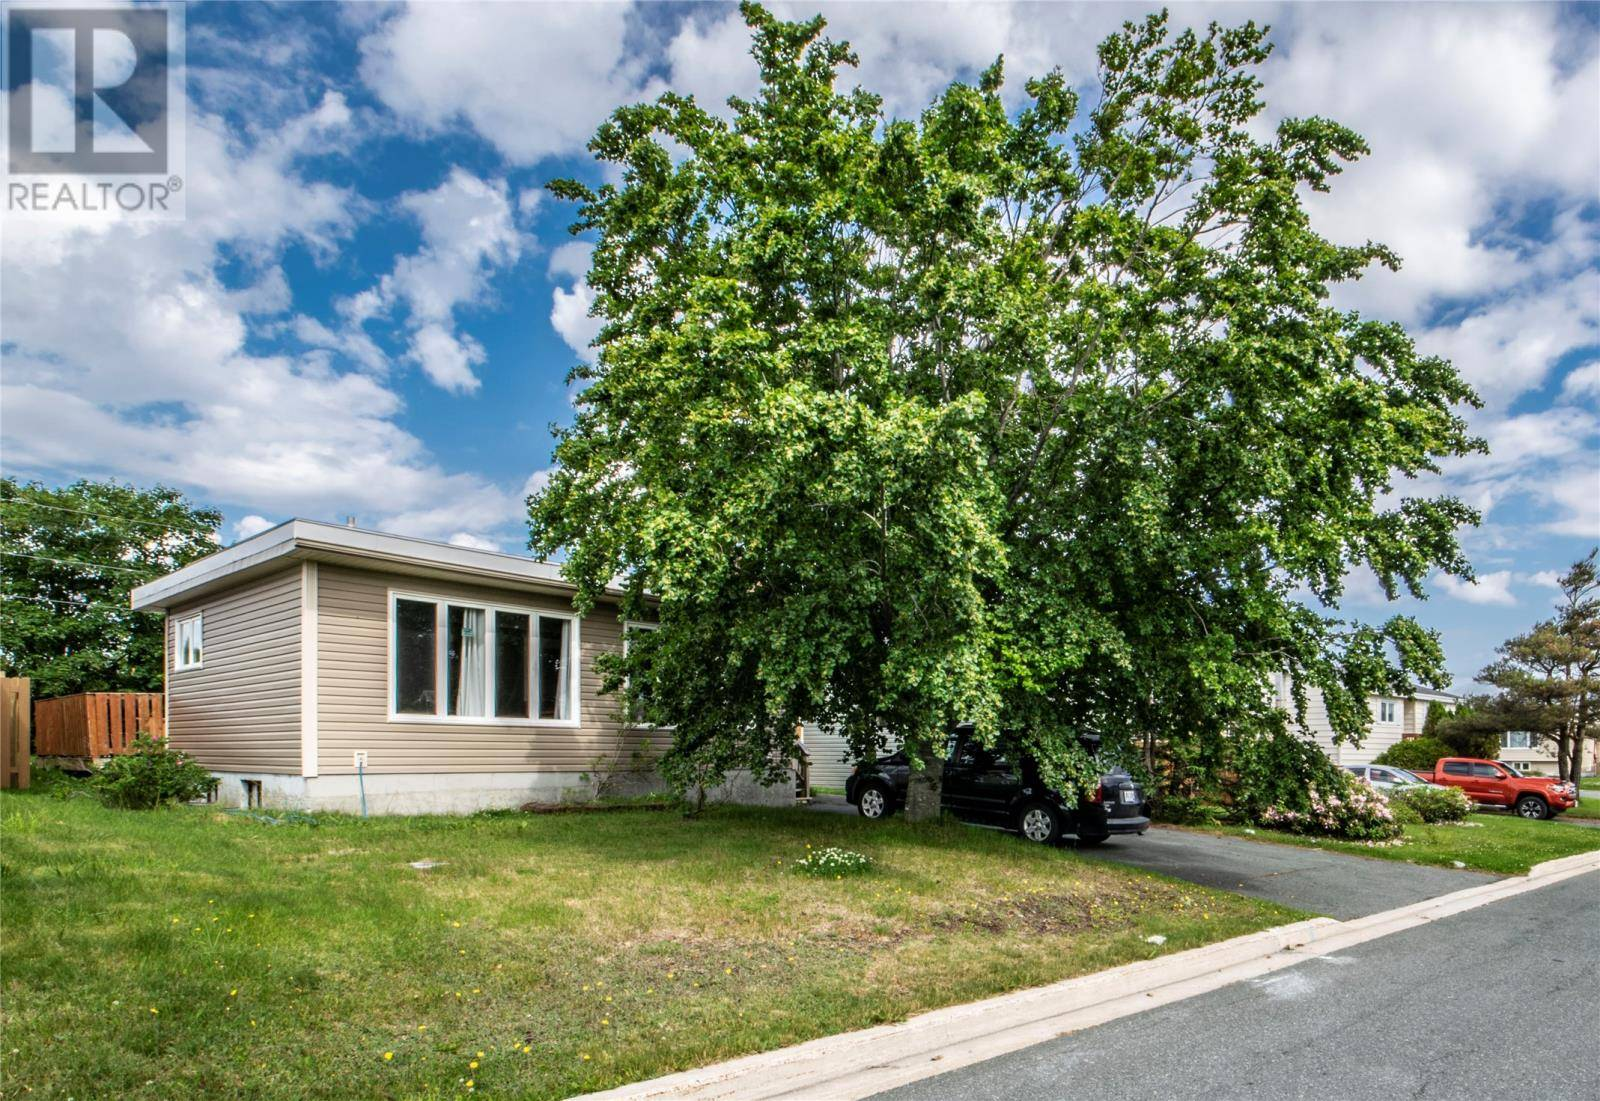 House for sale at 6 Wellington Cres Mount Pearl Newfoundland - MLS: 1207009